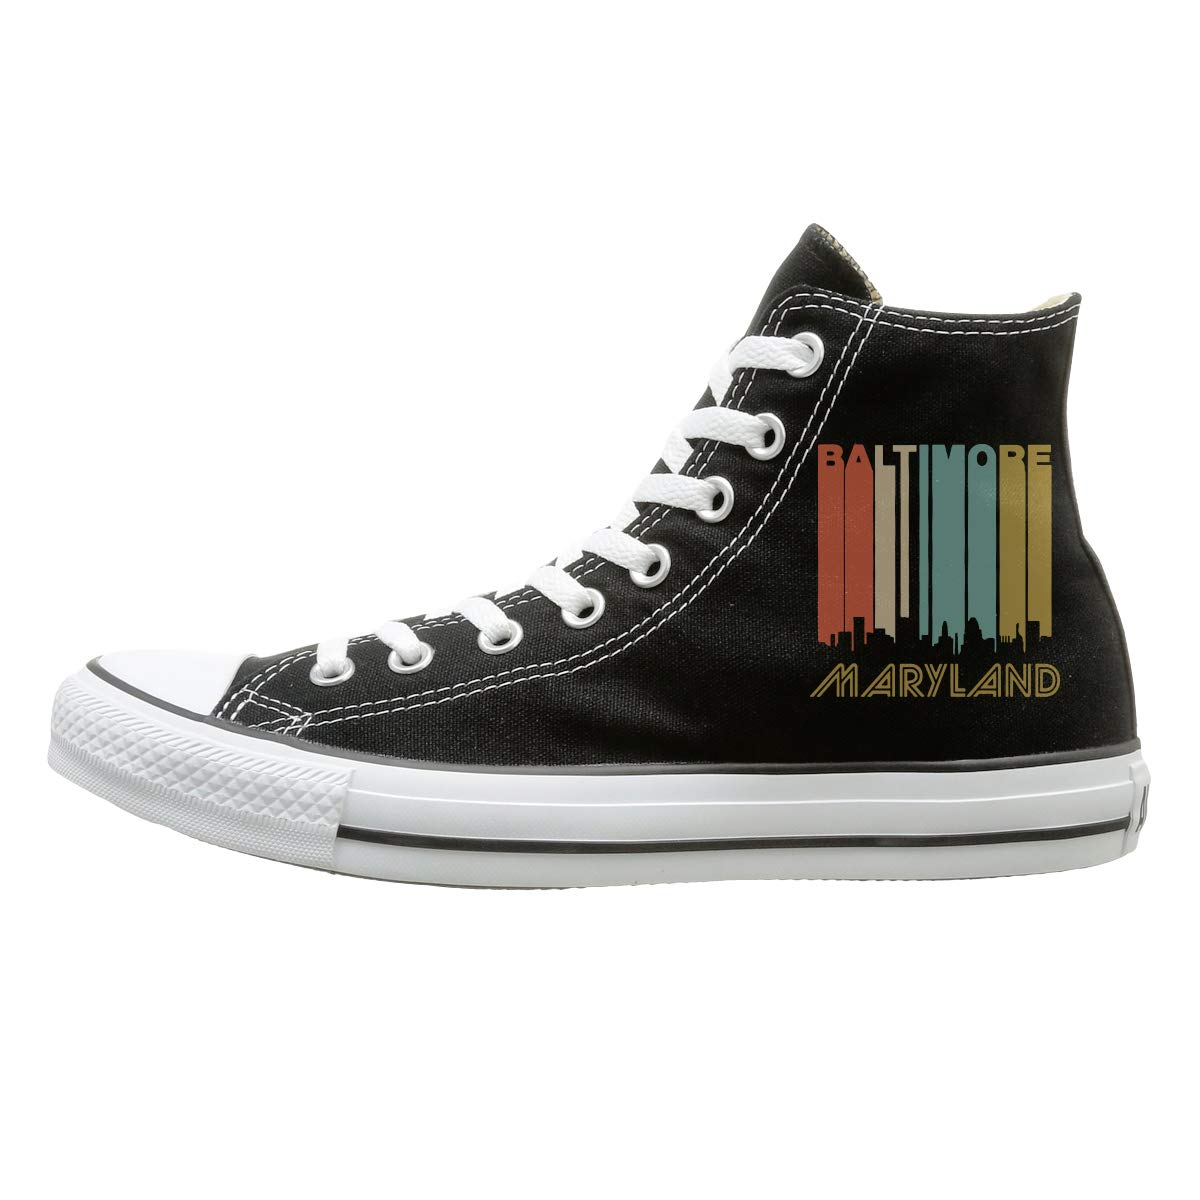 WI8Q-1 Retro Baltimore MD Skyline Fashion Canvas Shoes Sneaker Unisex High-Top Casual Shoes for Jogging Outdoor Sports